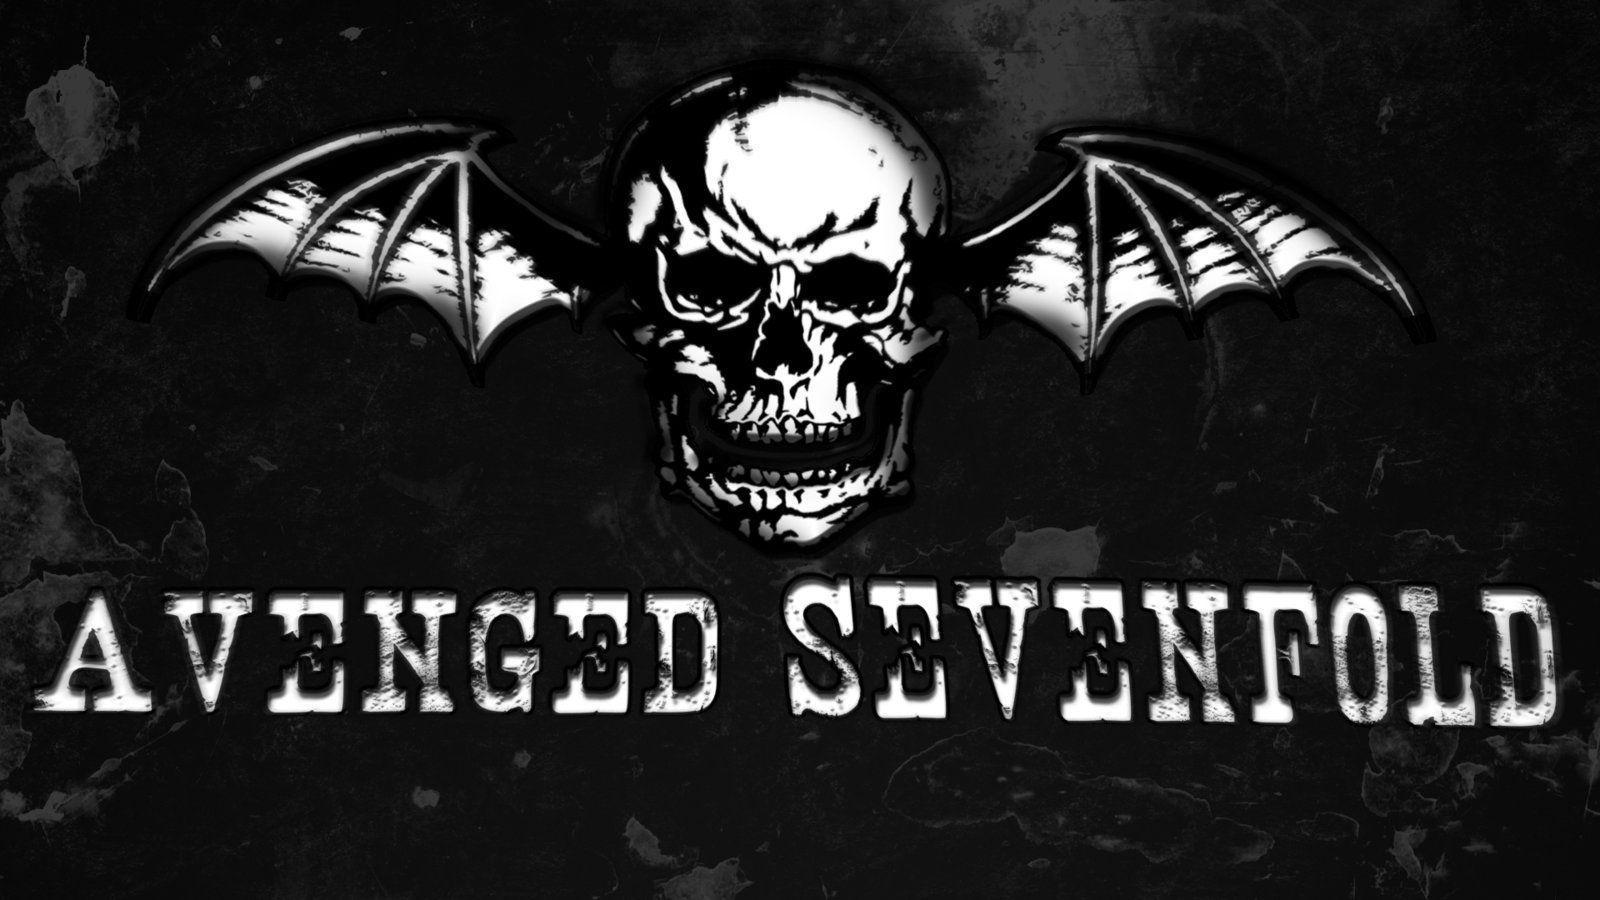 Avenged sevenfold 2015 wallpapers wallpaper cave download avenged sevenfold deathbat wallpaper by chaotichazard on voltagebd Choice Image